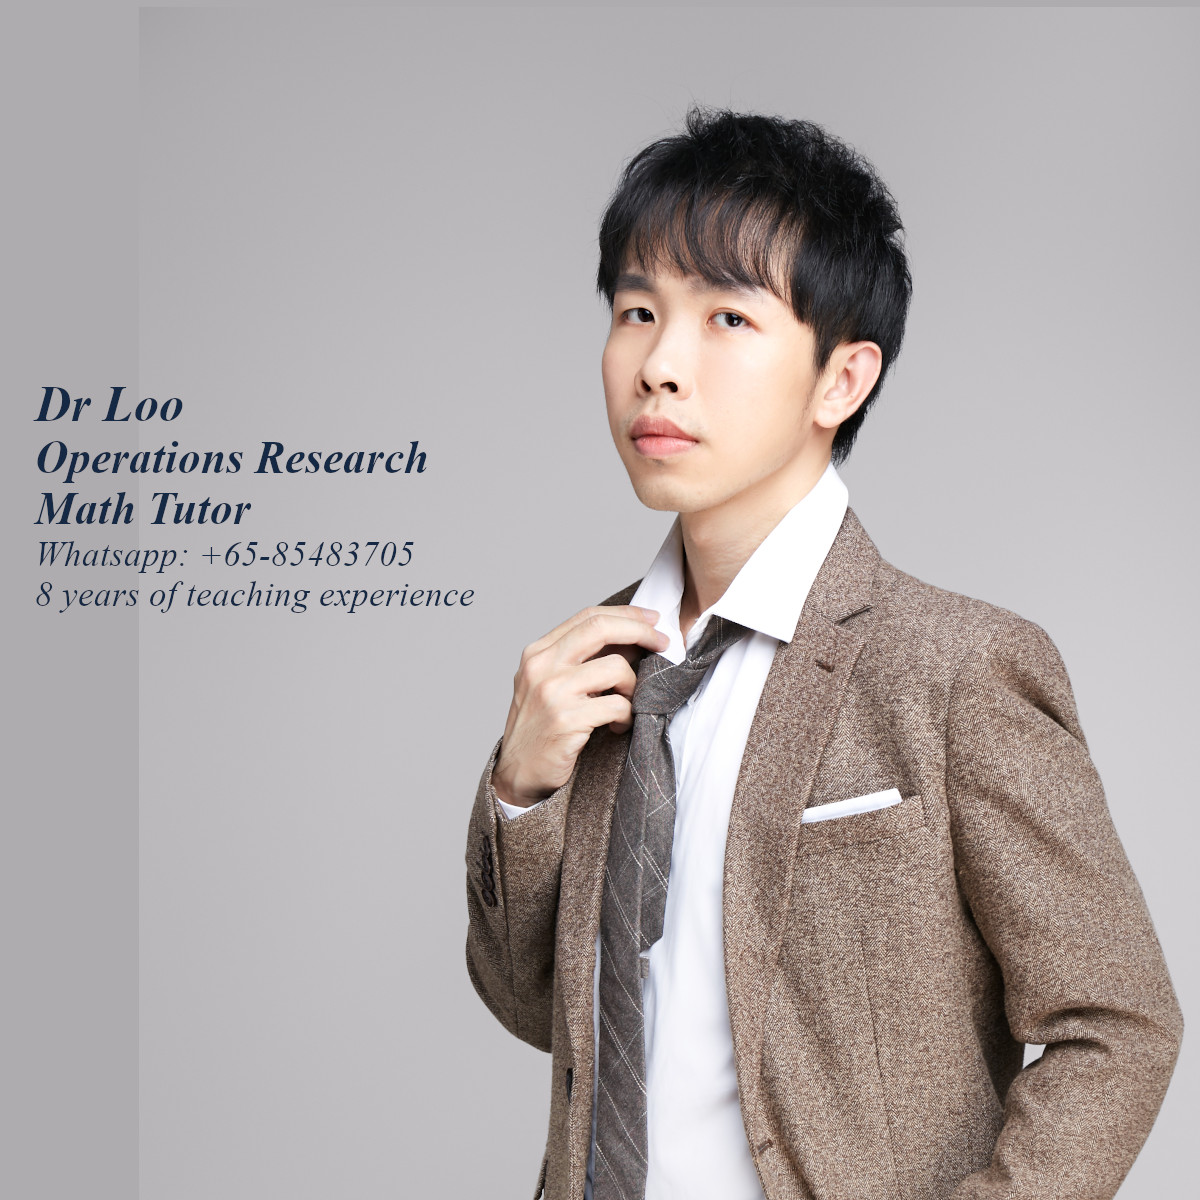 Operations Research Math Tutor in Singapore